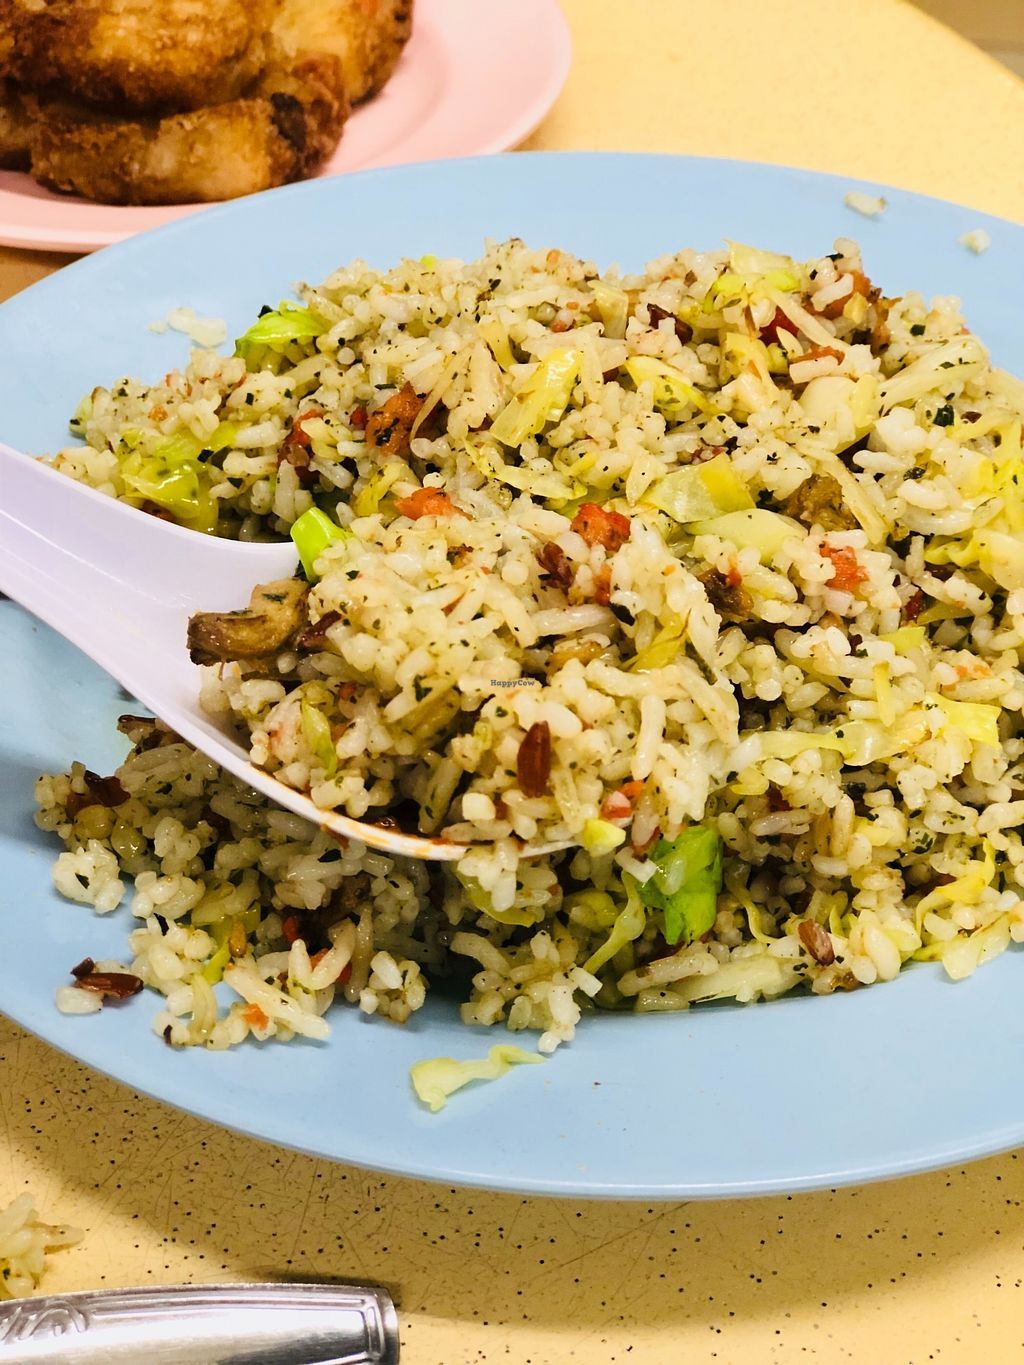 """Photo of Green Lane Vegetarian Food  by <a href=""""/members/profile/CherylQuincy"""">CherylQuincy</a> <br/>Olive fried rice  <br/> February 9, 2018  - <a href='/contact/abuse/image/79480/356903'>Report</a>"""